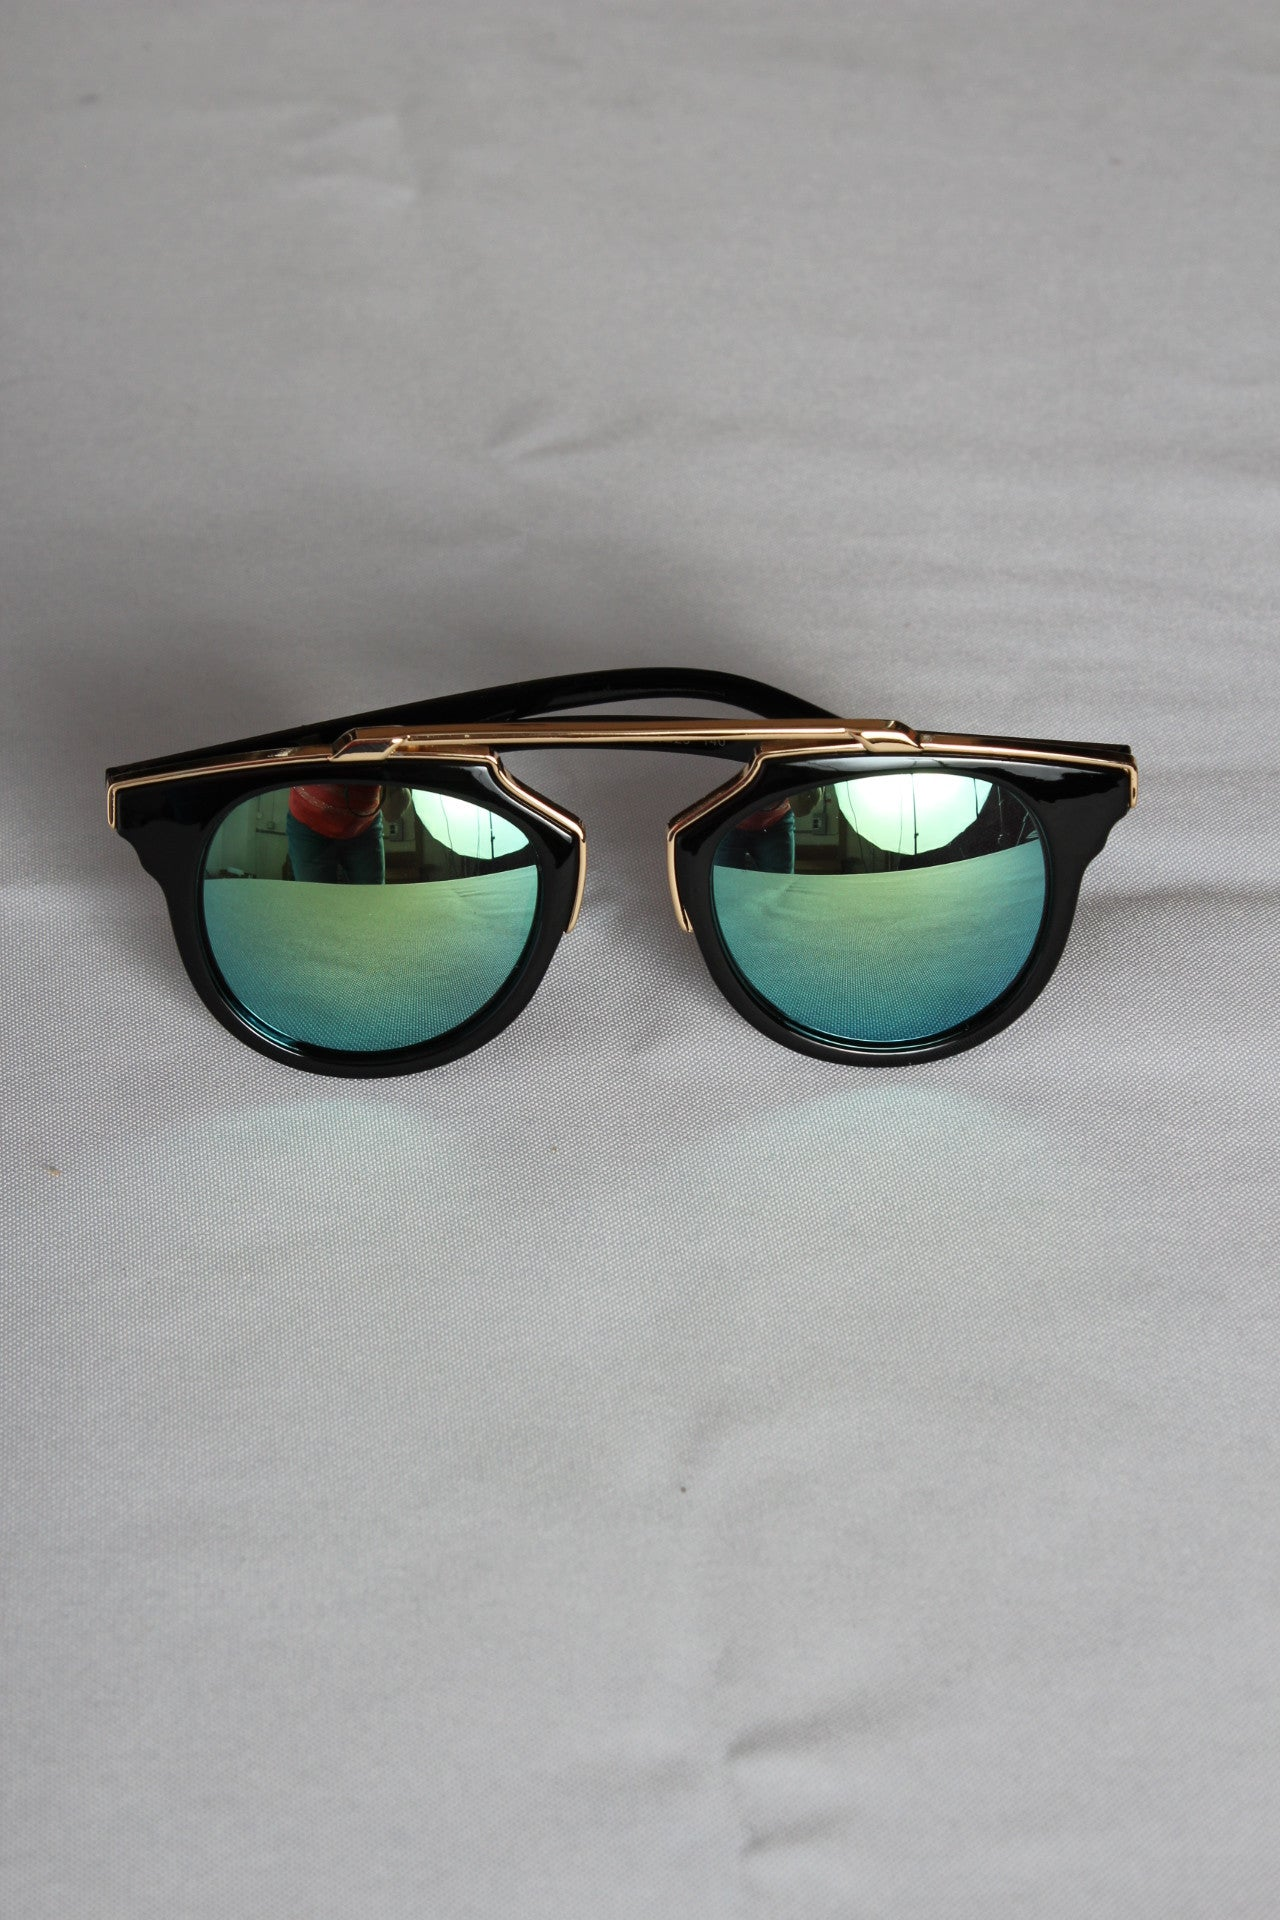 Plus Size Clothing for Women - Mermaid Sunnies - Society+ - Society Plus - Buy Online Now! - 2